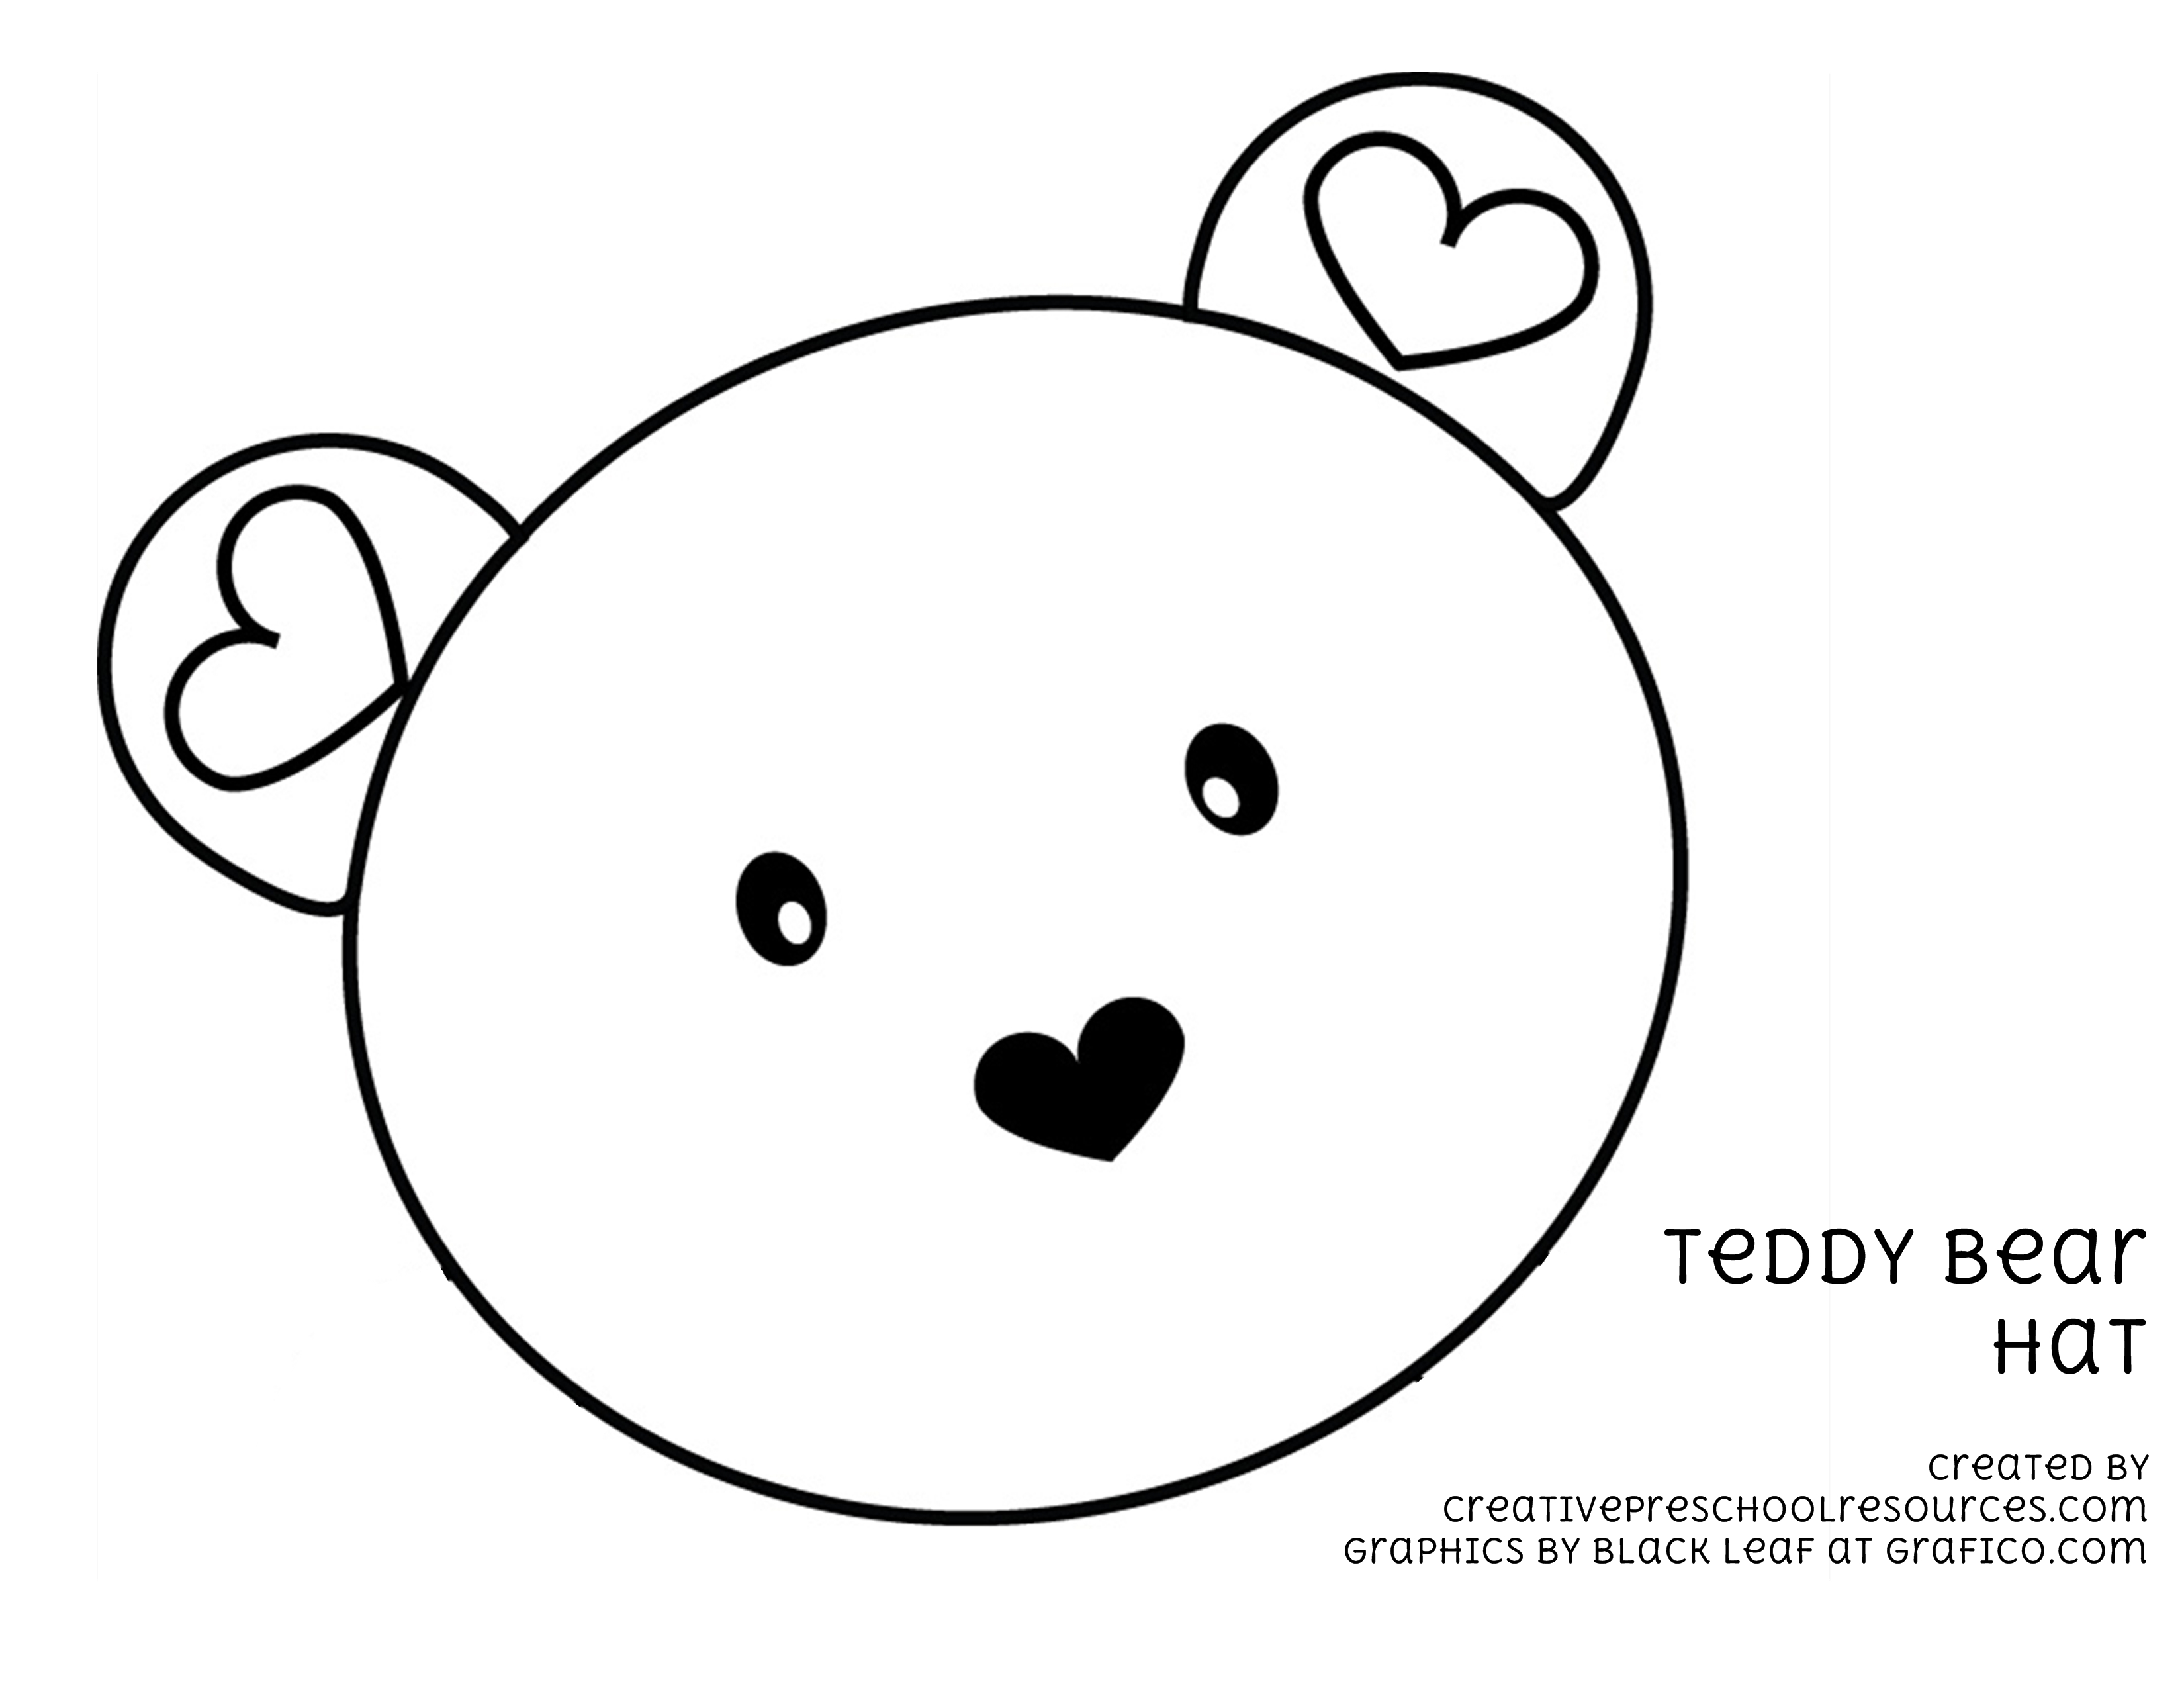 teddy bear face coloring pages - photo#34